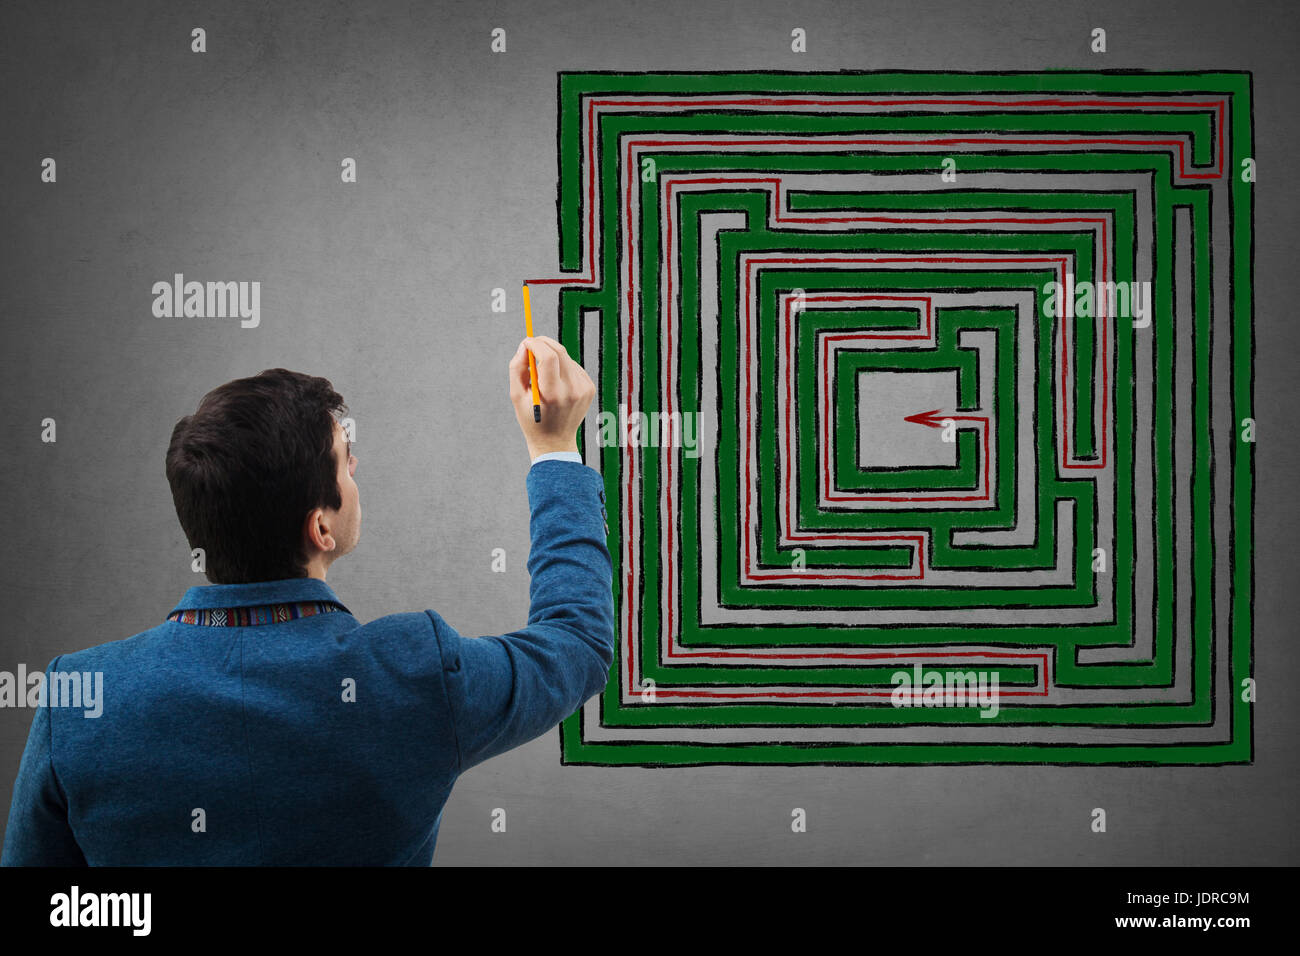 Young businessman holding a pencil in his hand try to find the solution of a imaginative square maze, drawing a - Stock Image